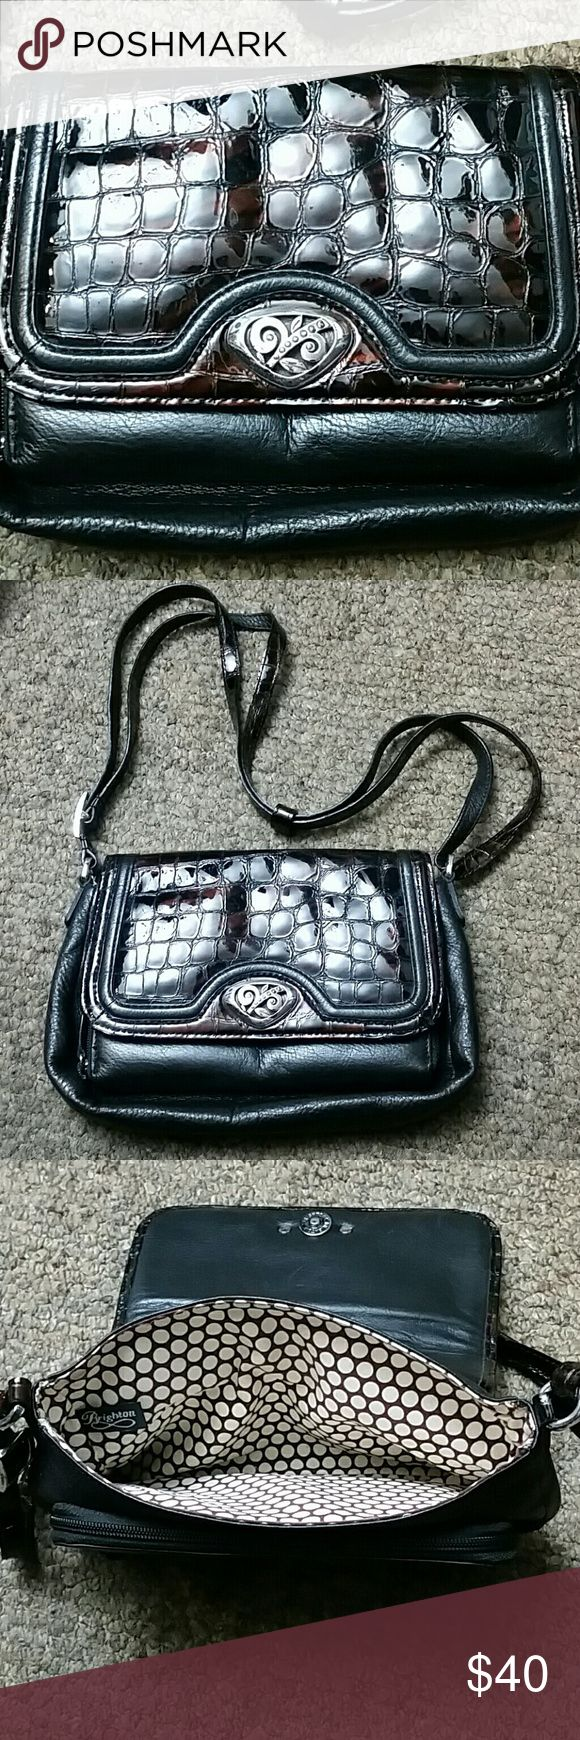 Black/Tortoise Brighton Purse Vintage Brighton Purse with long adjustable strap. Zip open wallet in front. Magnetic snap closure. Great used condition!! Brighton Bags Crossbody Bags